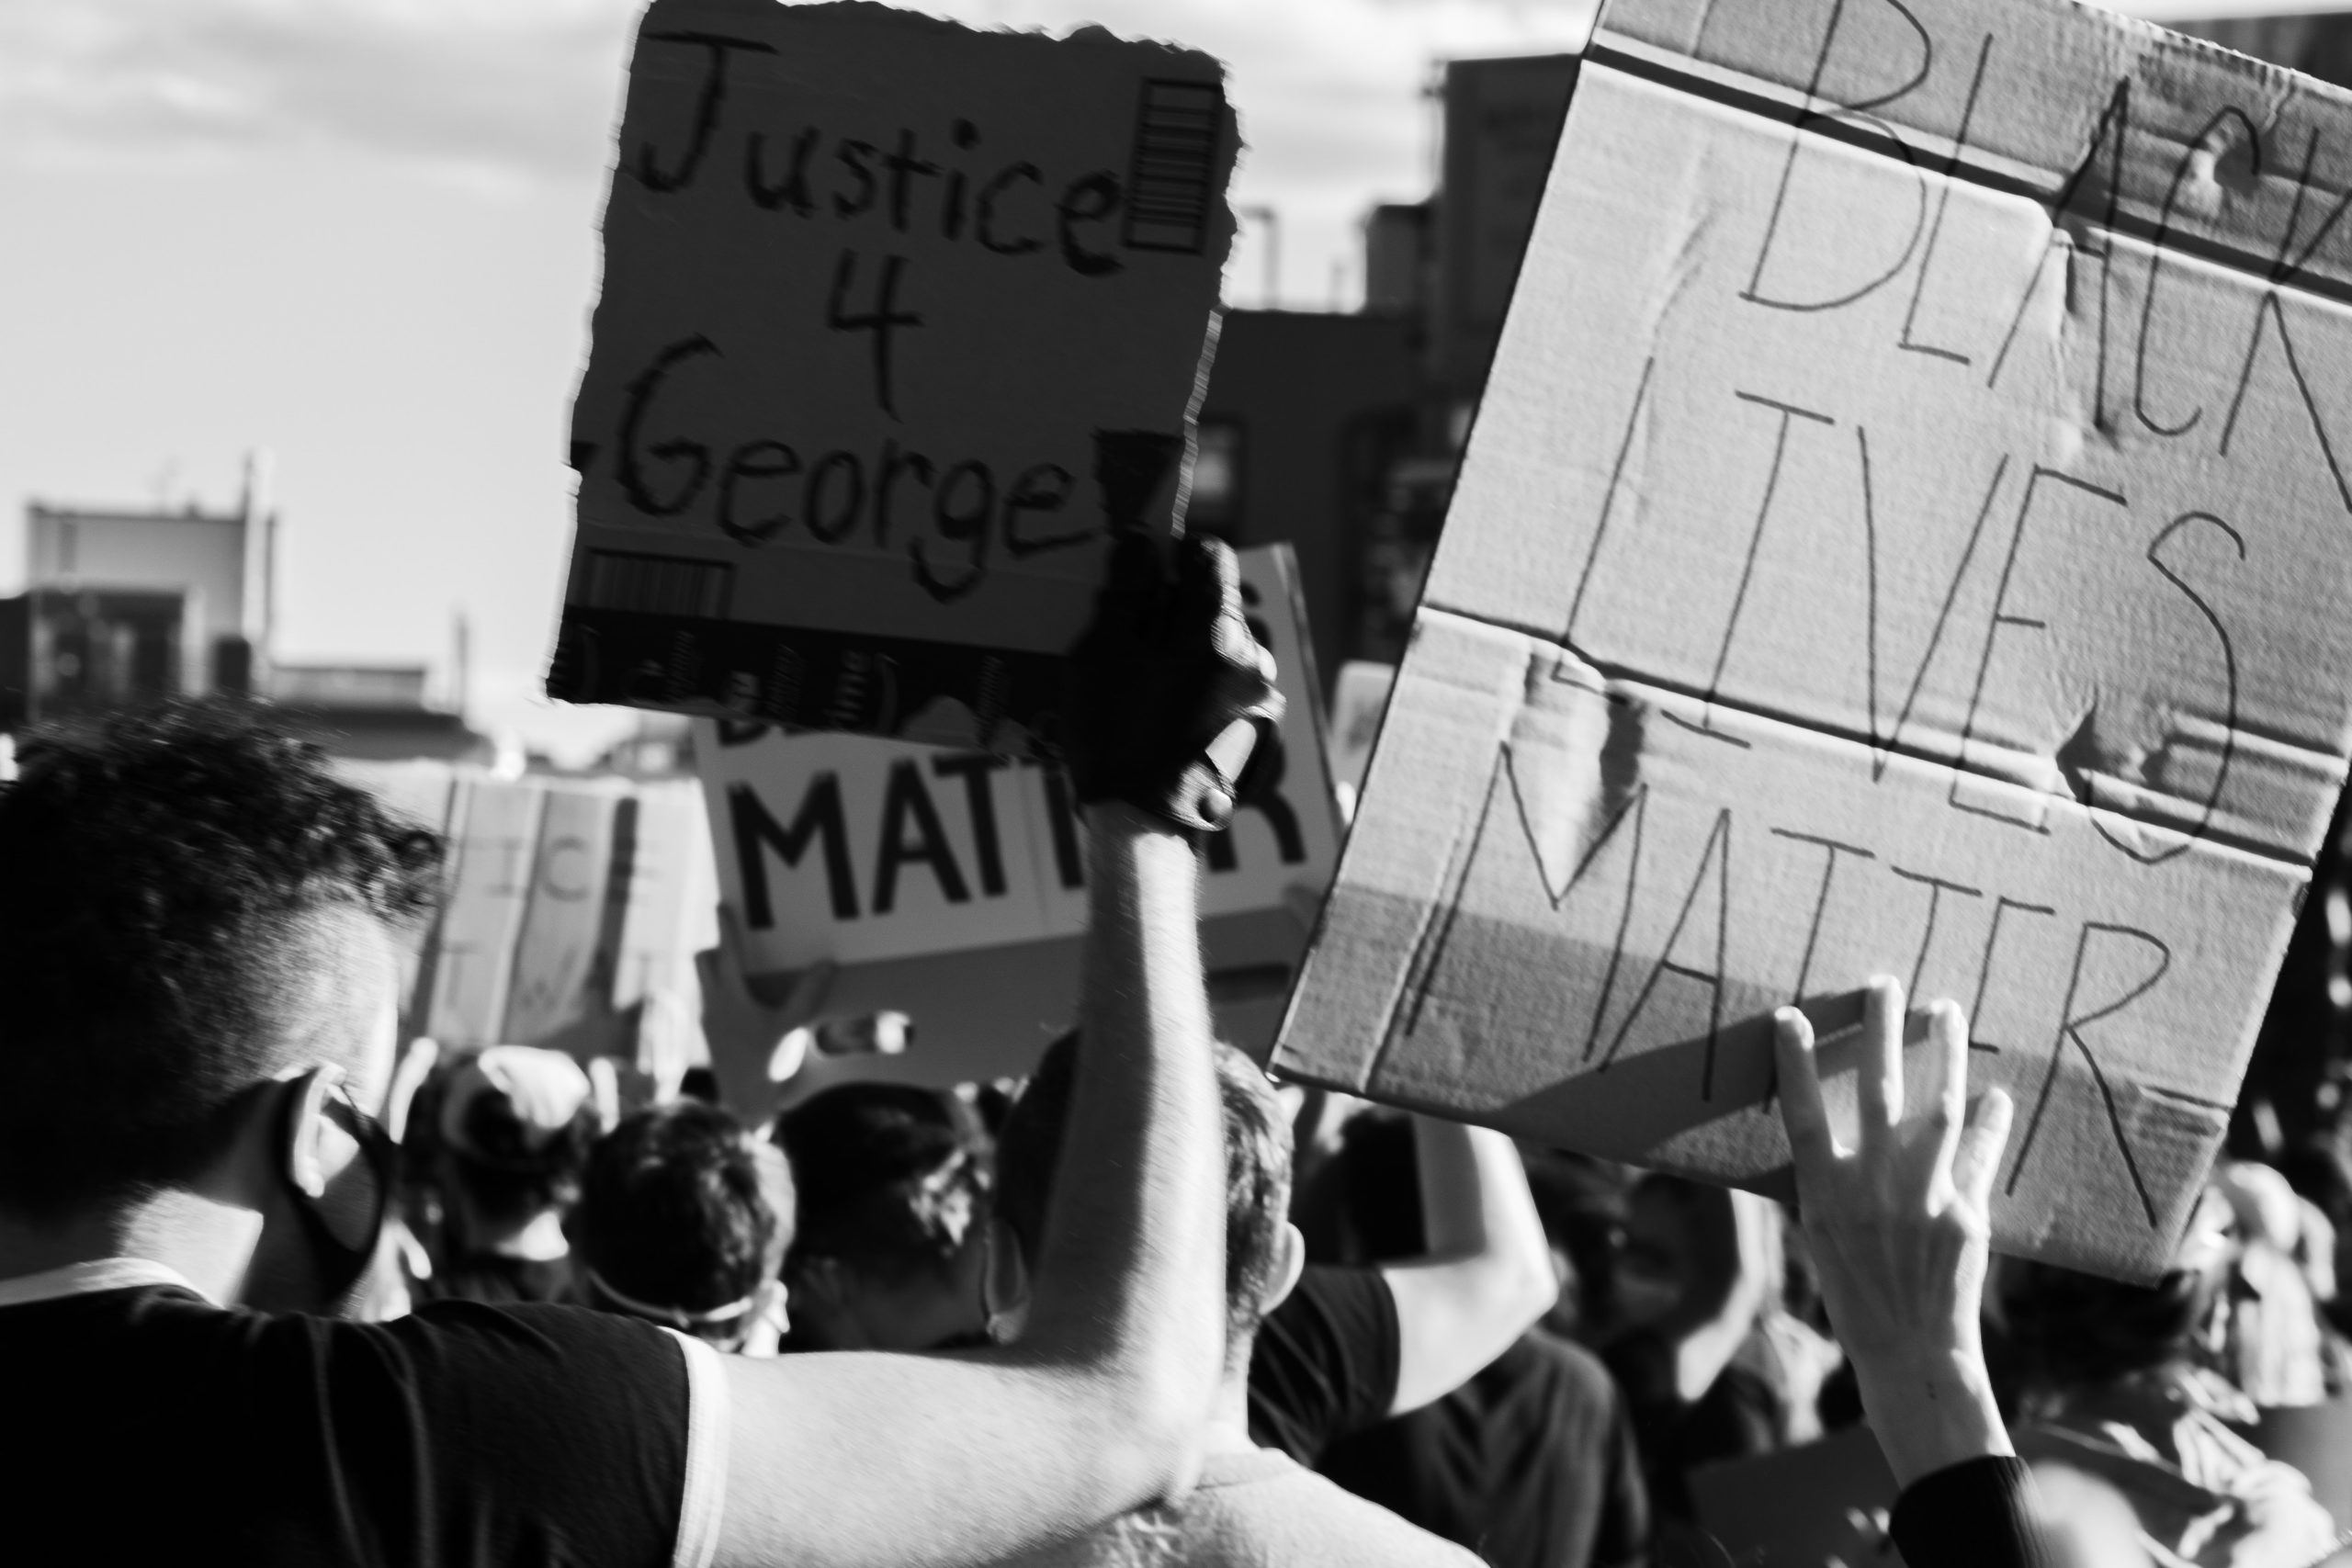 Justice Walk: Race, Protest, and Faith in a small Iowa Town.